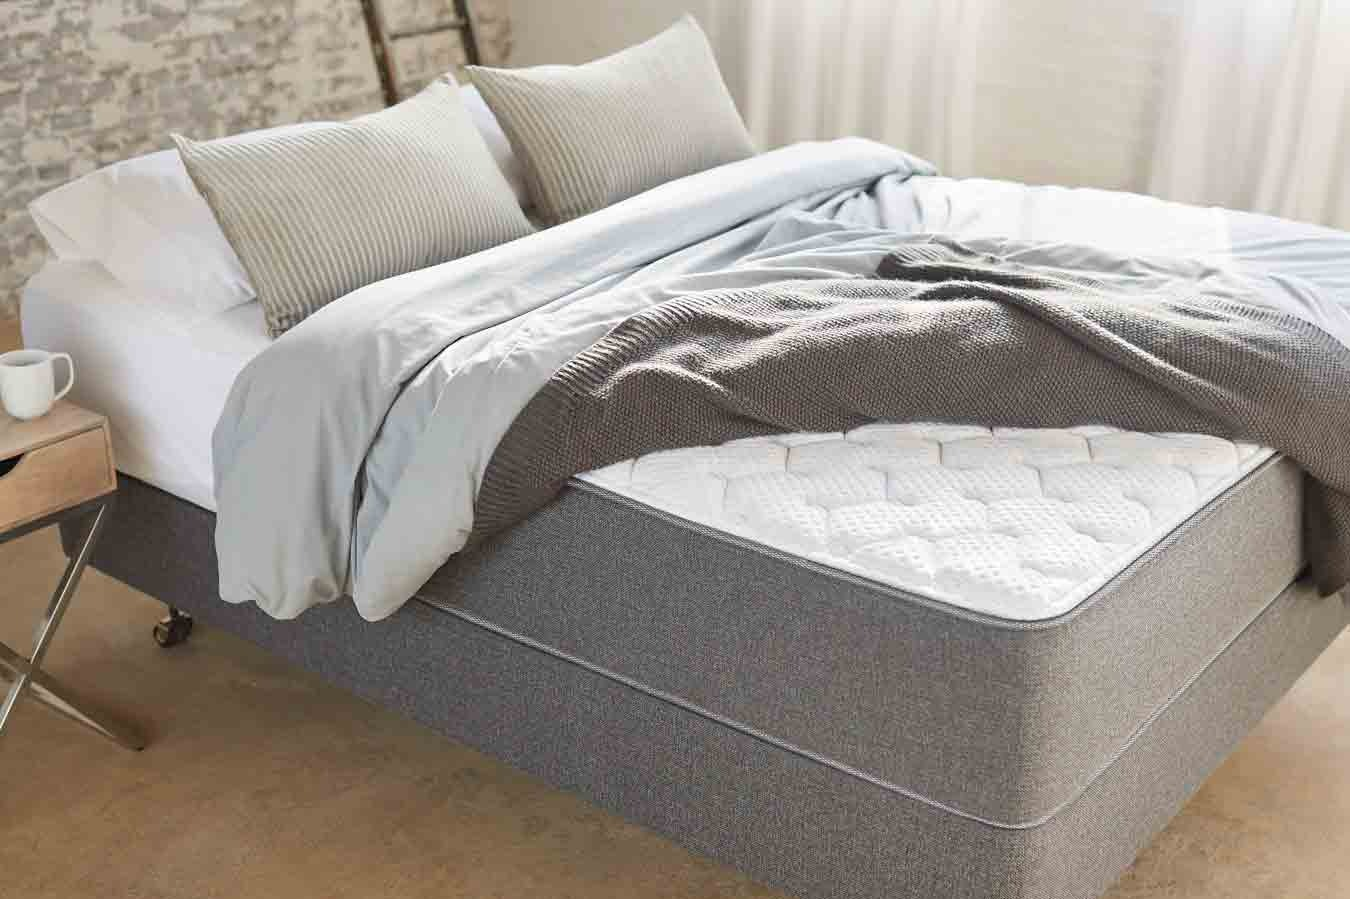 Buying A Mattress 7 Things You Need To Know Before You Buy The Best Mattress